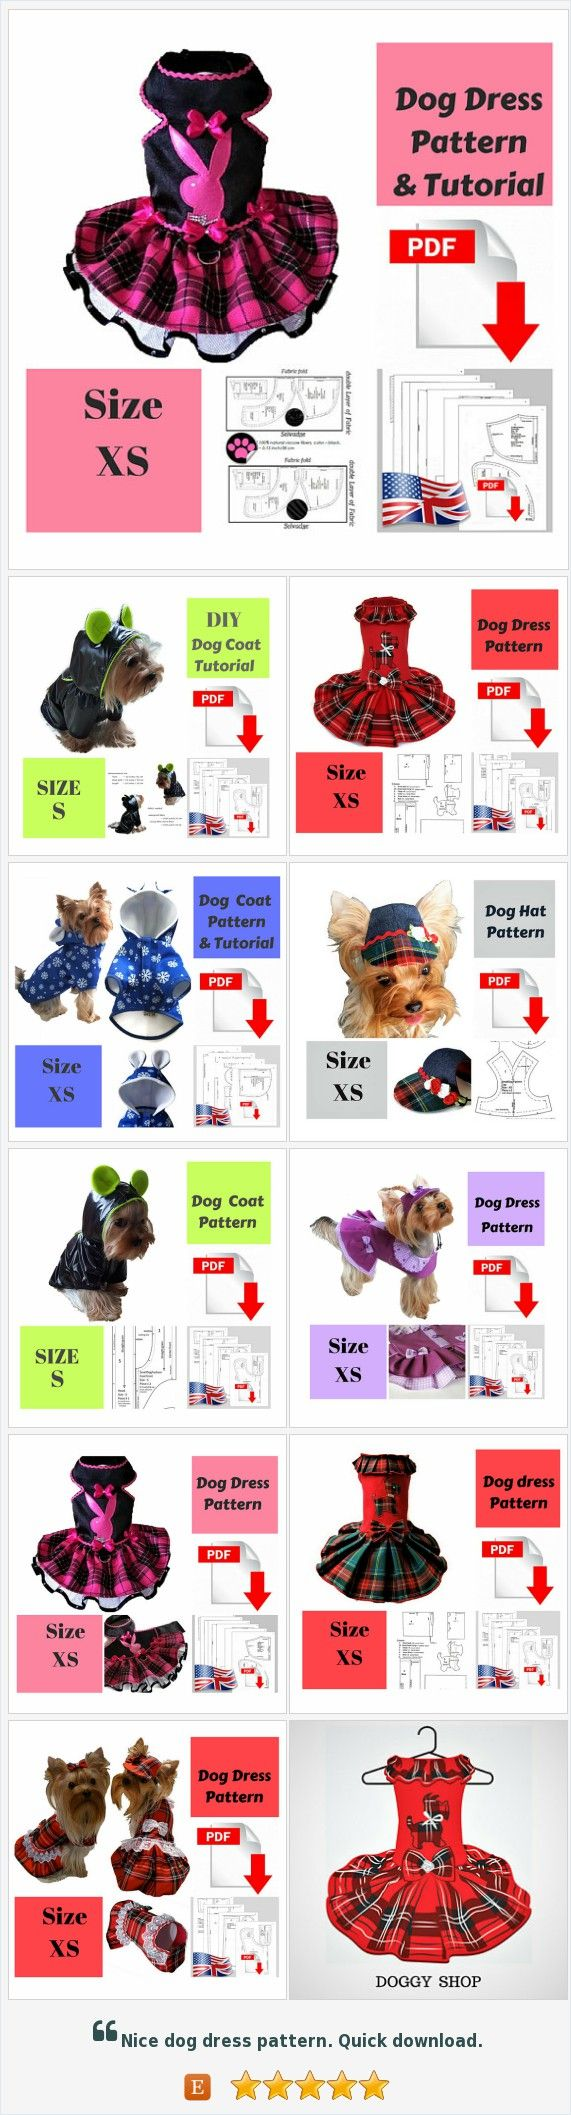 Small #dog #clothes, Hats, Bandanas, #Patterns & #Tutorial by SmallDogFashion https://www.etsy.com/shop/SmallDogFashion?ref=l2-shopheader-name&section_id=22499733